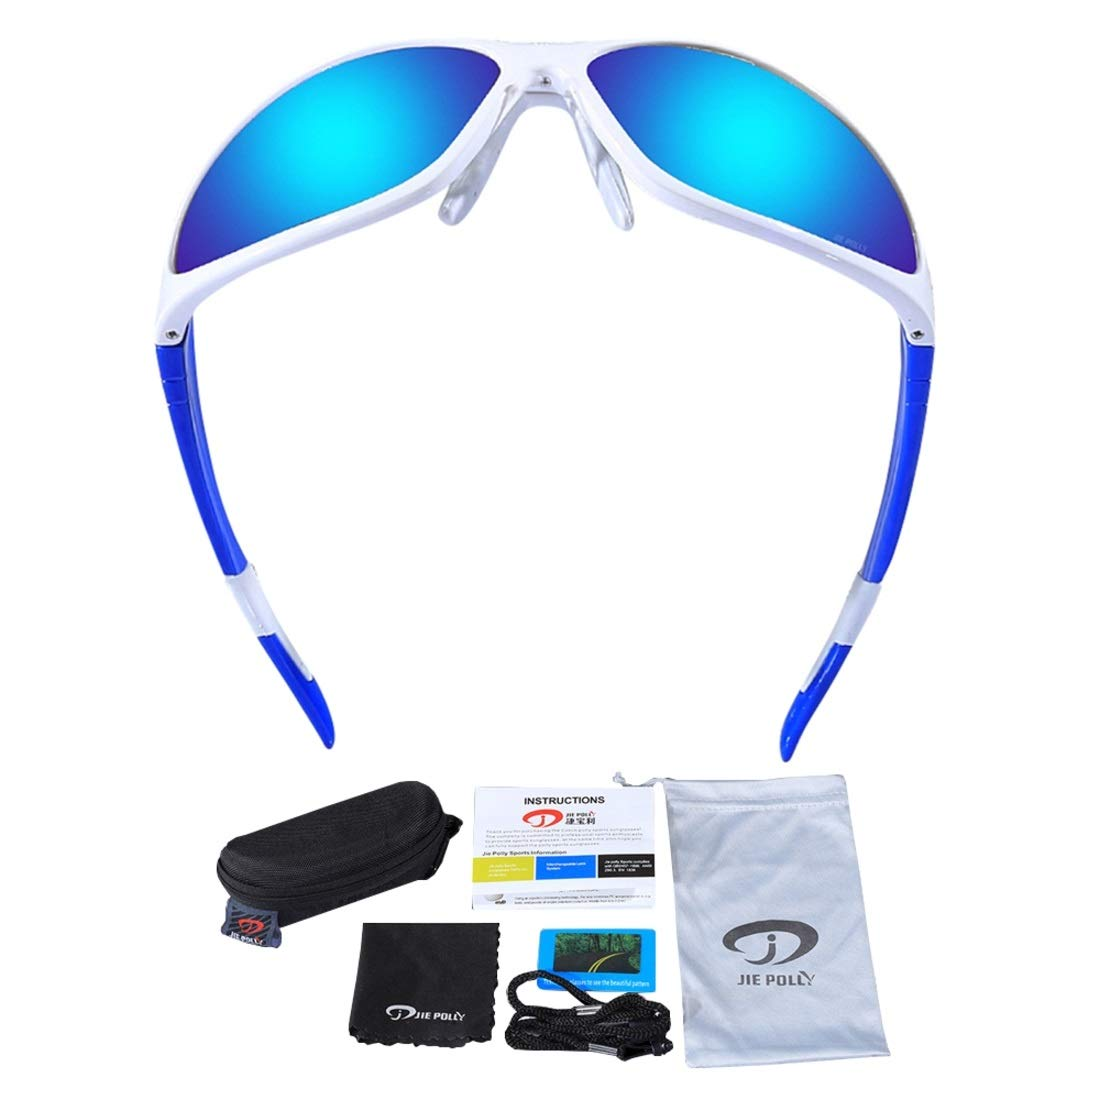 BAOYIT Riding Glasses Polarized Outdoor Sports Mirror HD Sunglasses Beach Climbing Fishing Glass for Women Men (Color : Blue) by BAOYIT